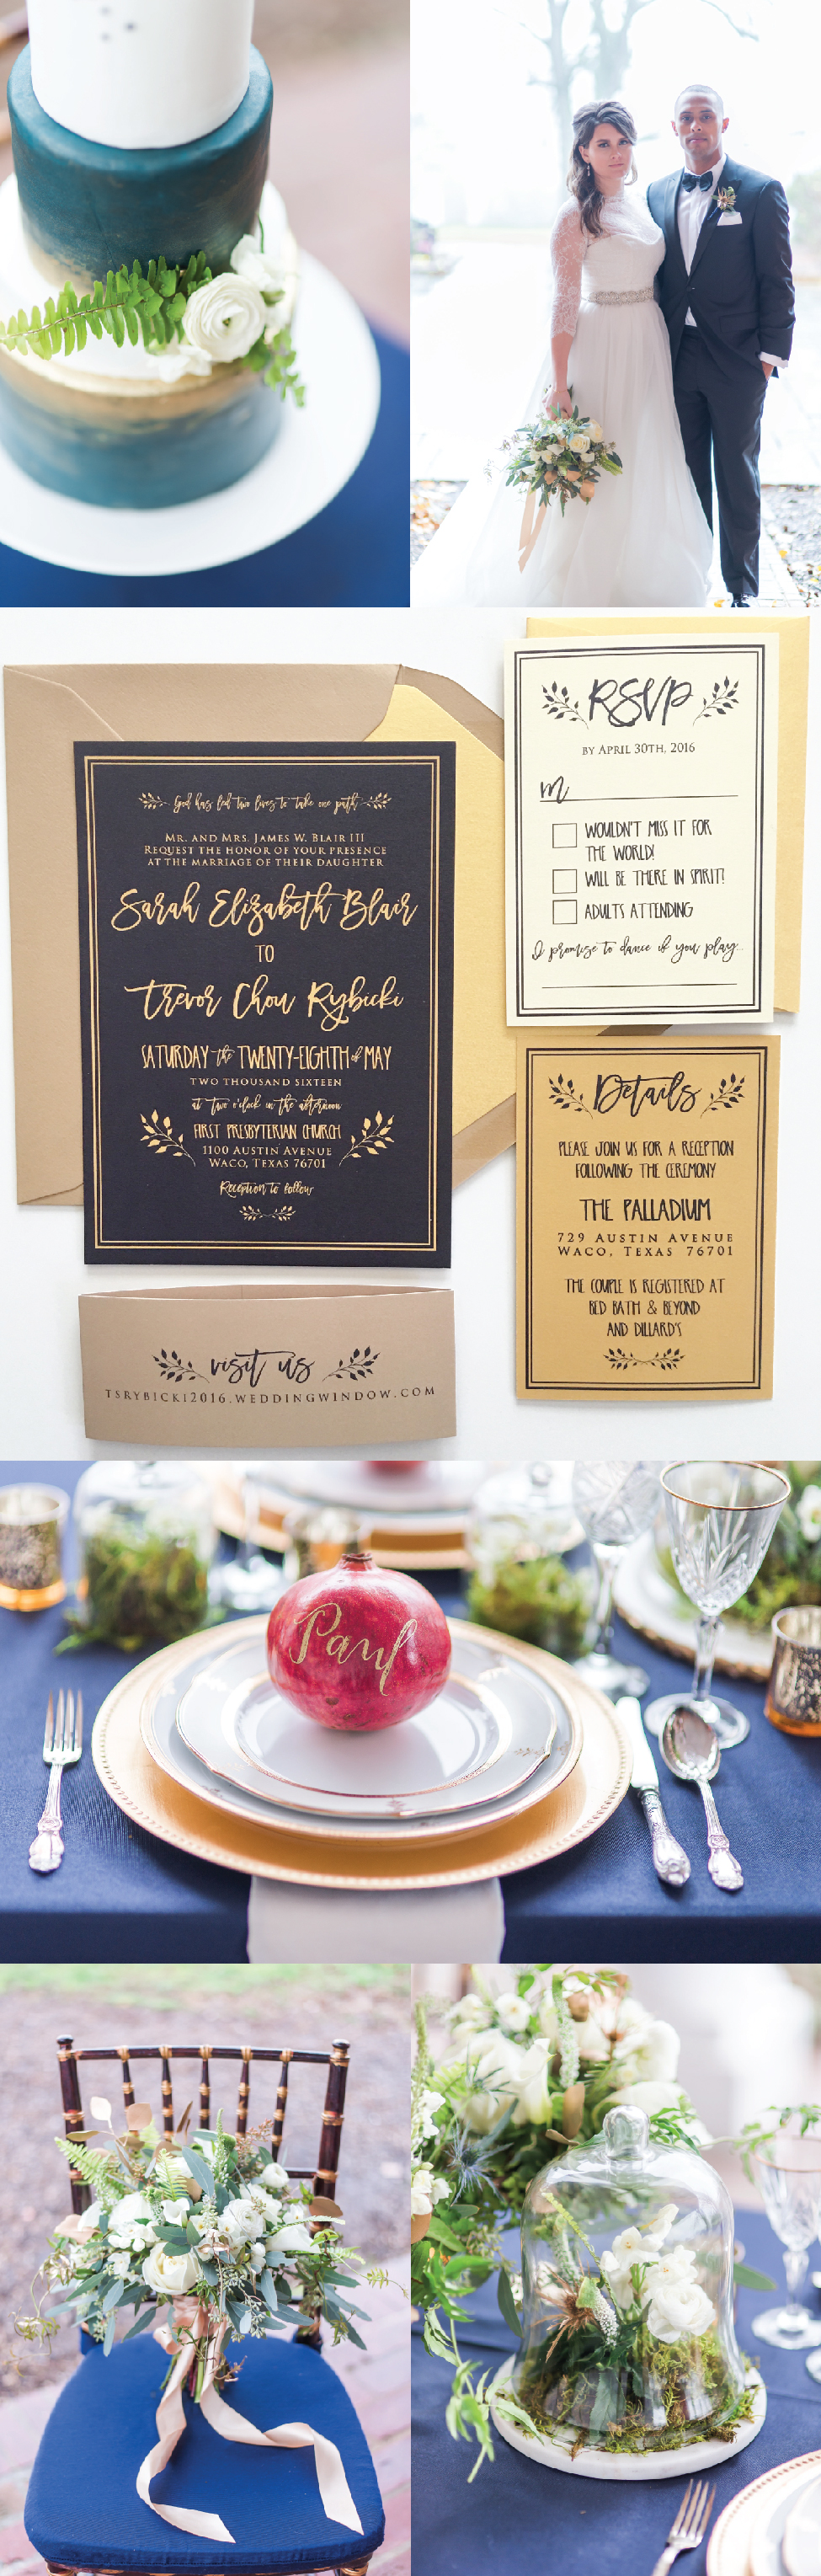 navy and gold wedding invitations.jpg